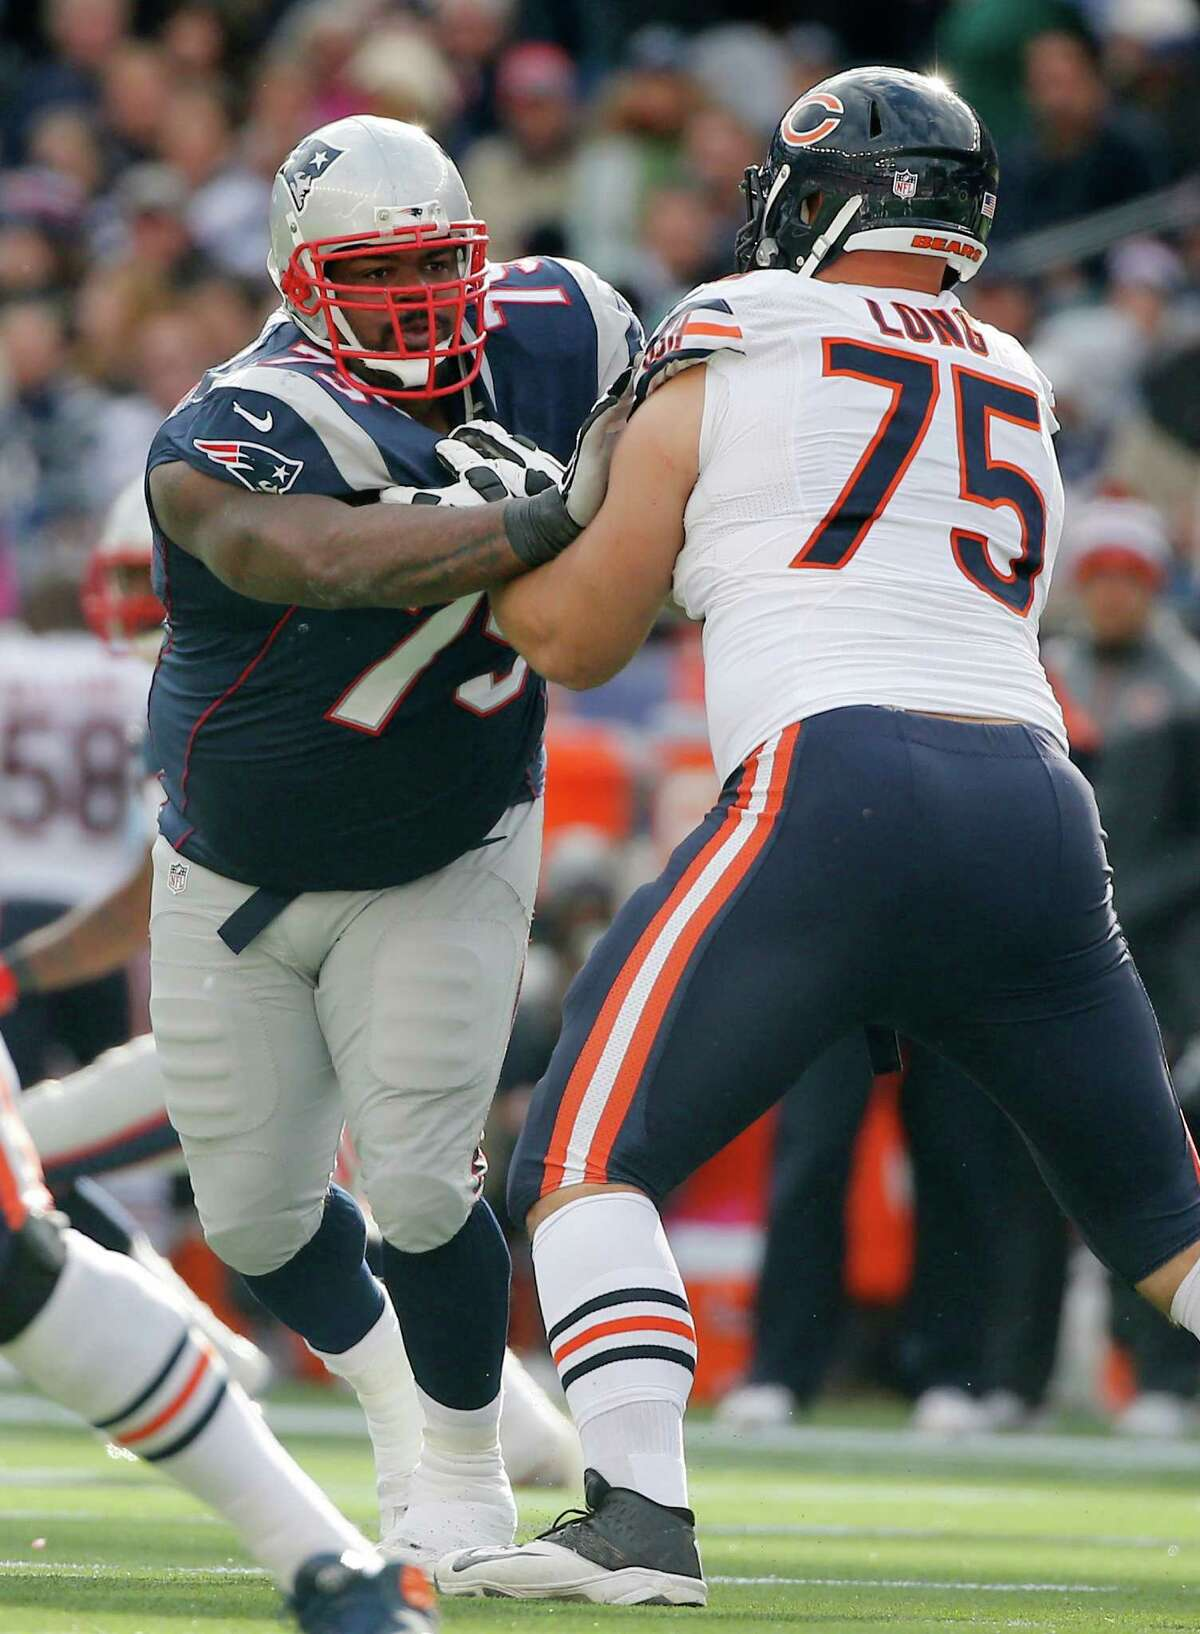 Vince Wilfork, left, gave the Patriots consistent production from his nose tackle position.